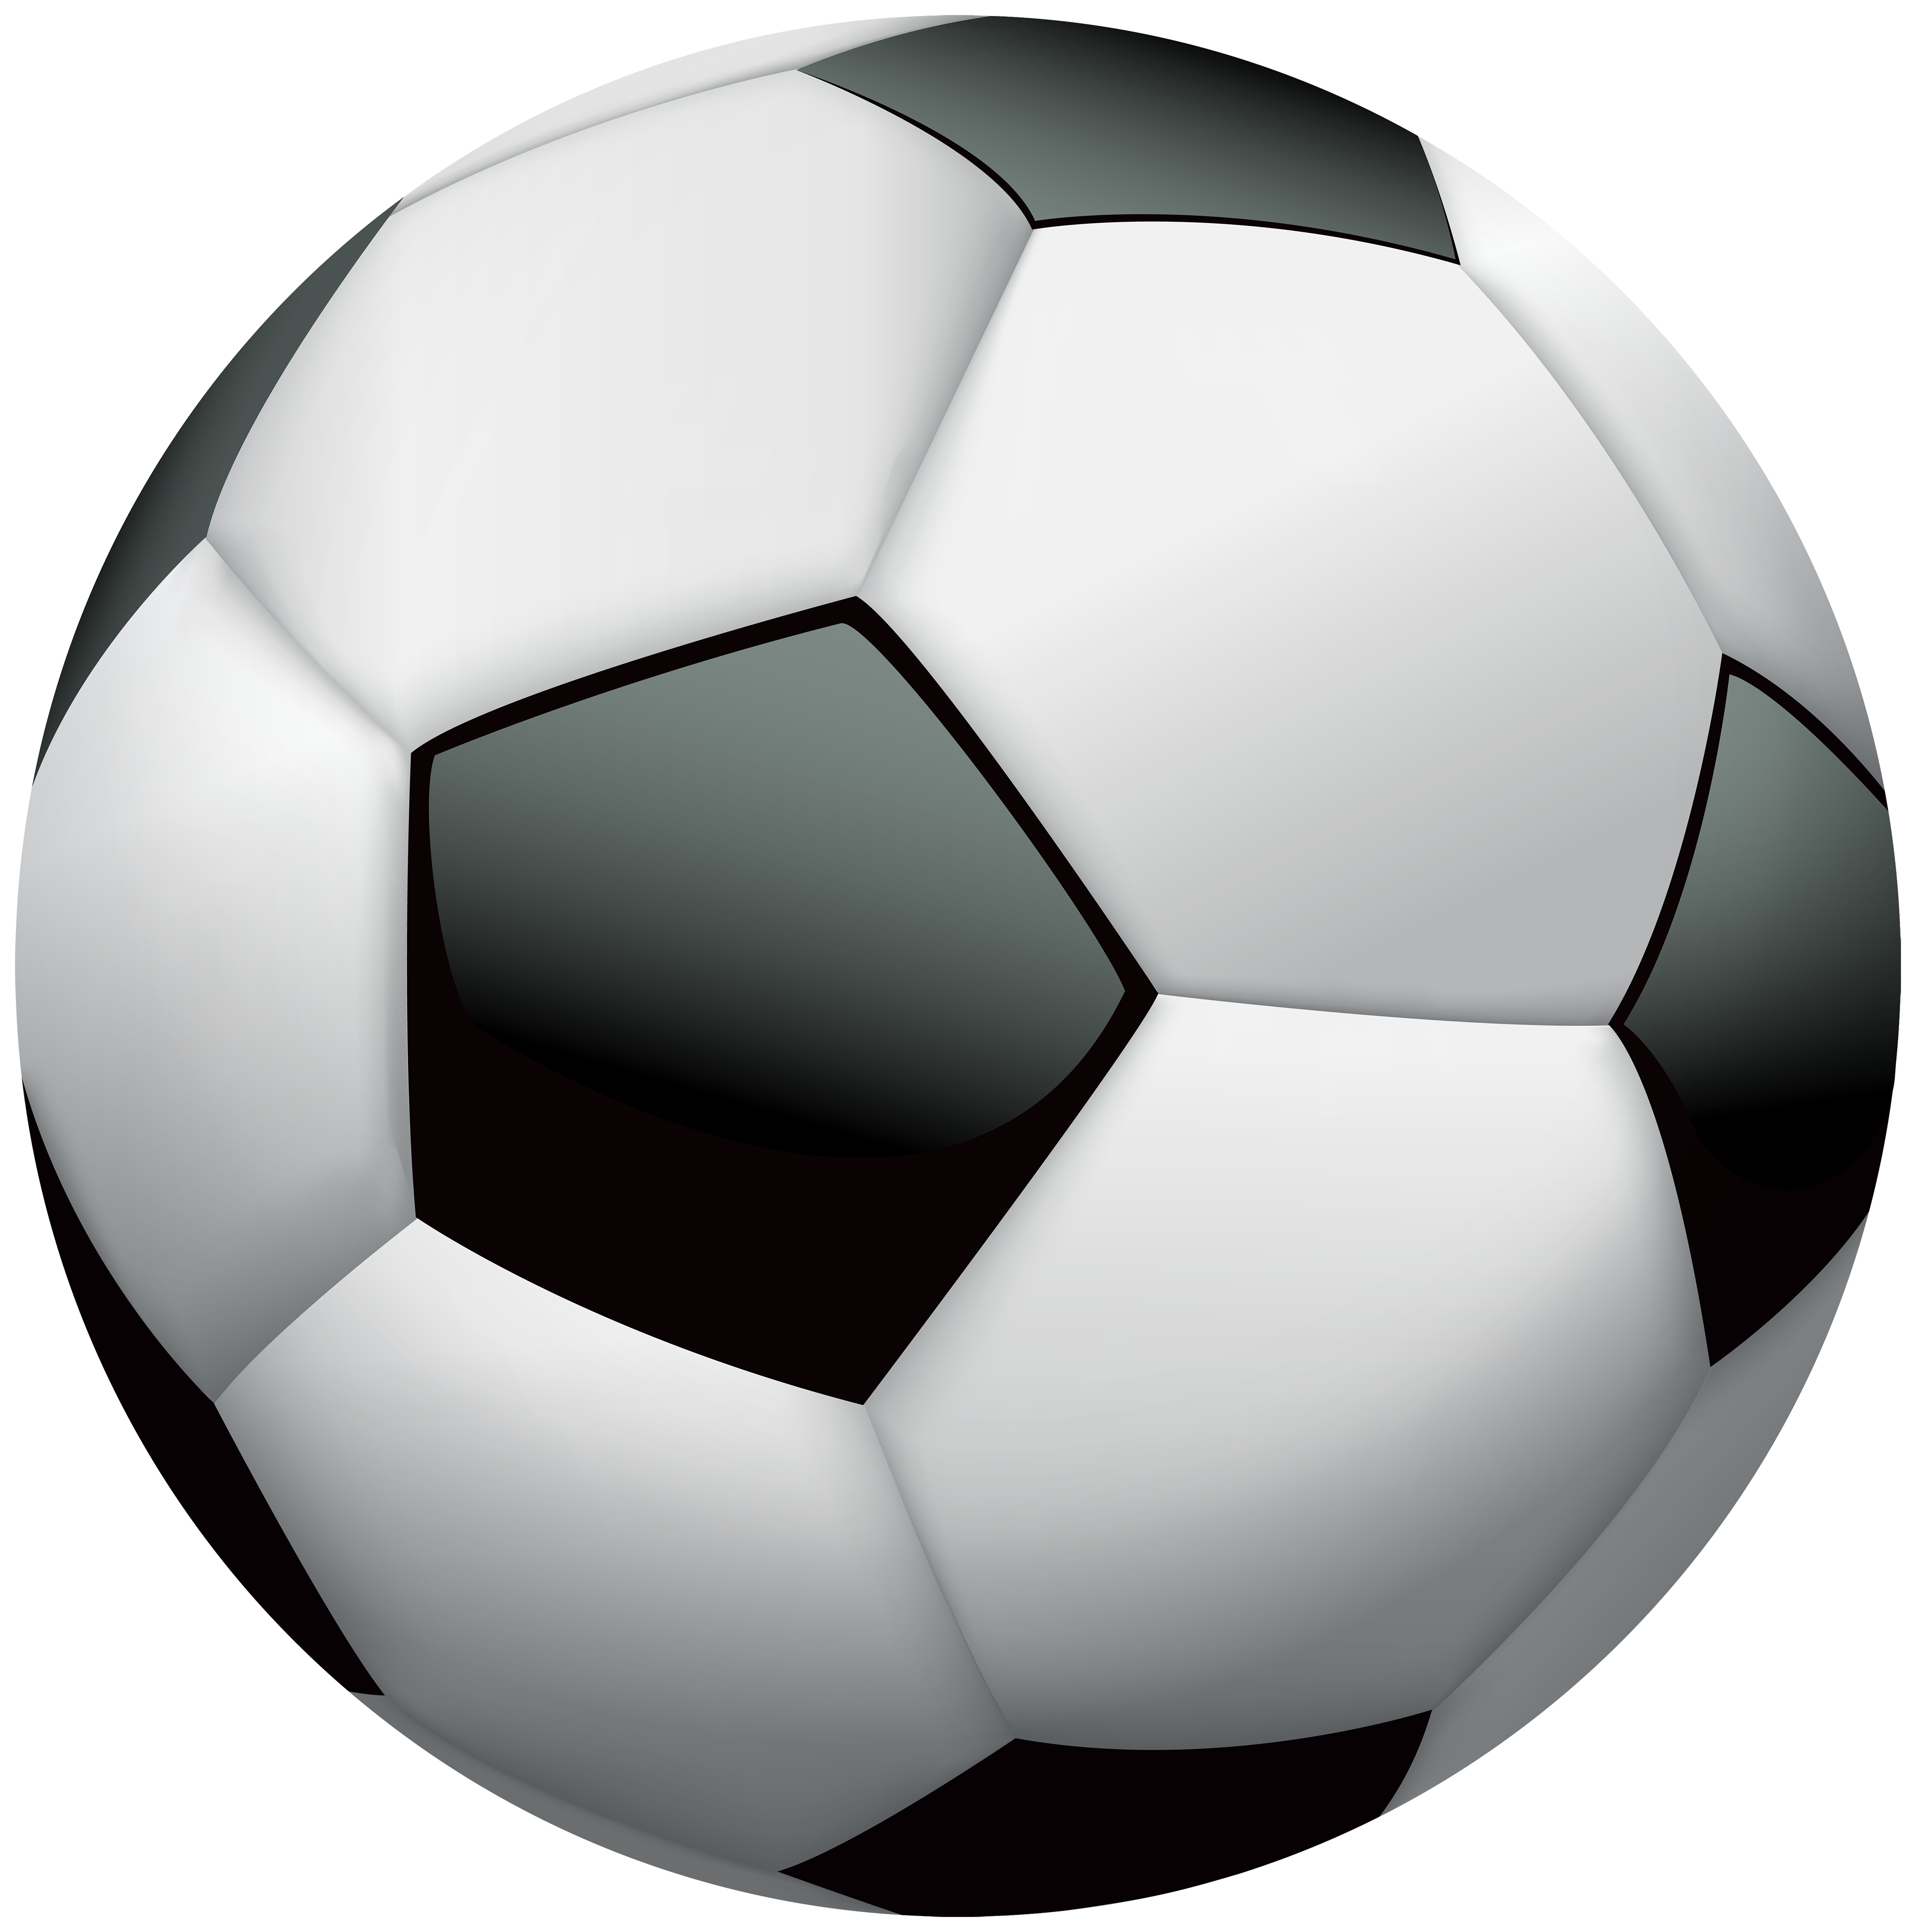 3967x4000 Soccer Ball Clip Art Free Large Images 2